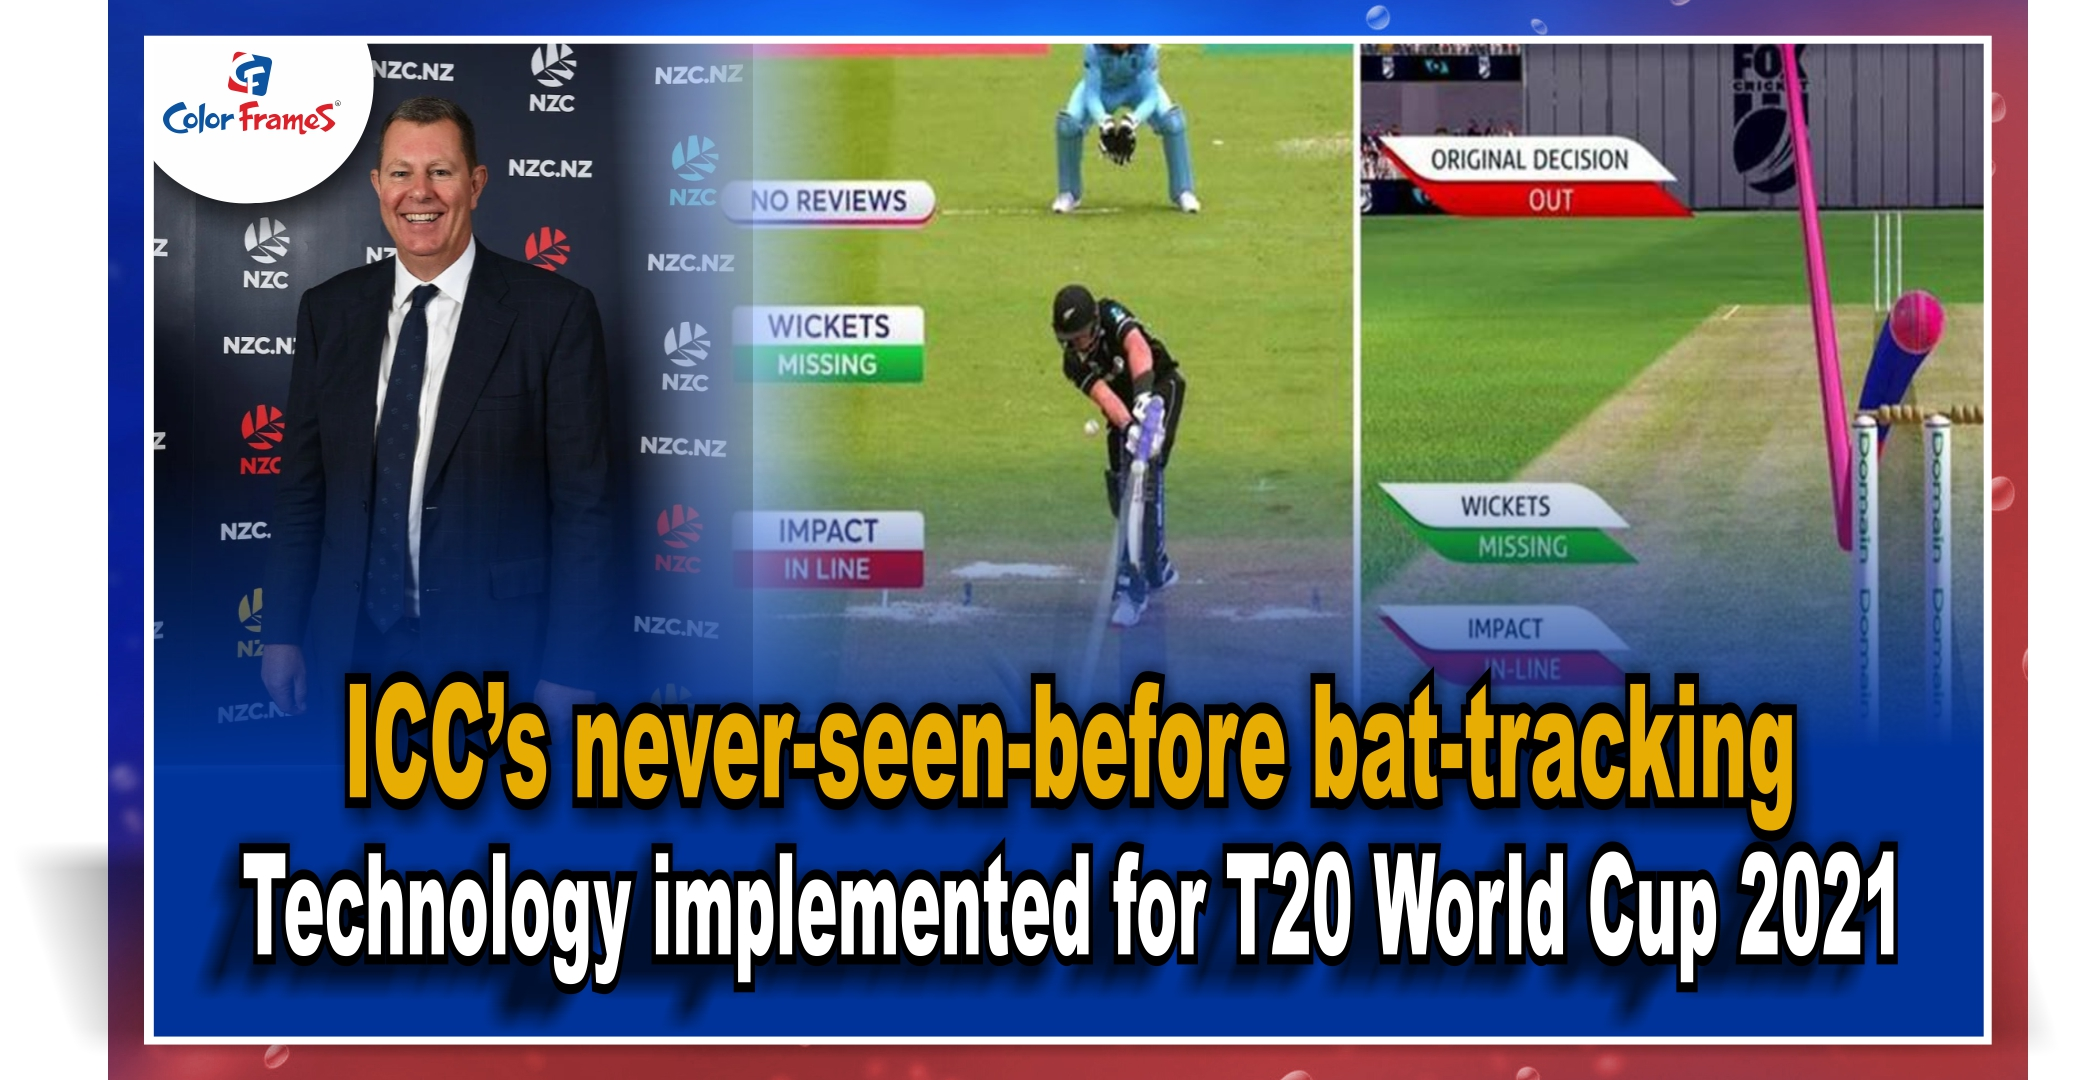 ICC's never-seen-before bat-tracking technology implemented for T20 World Cup 2021